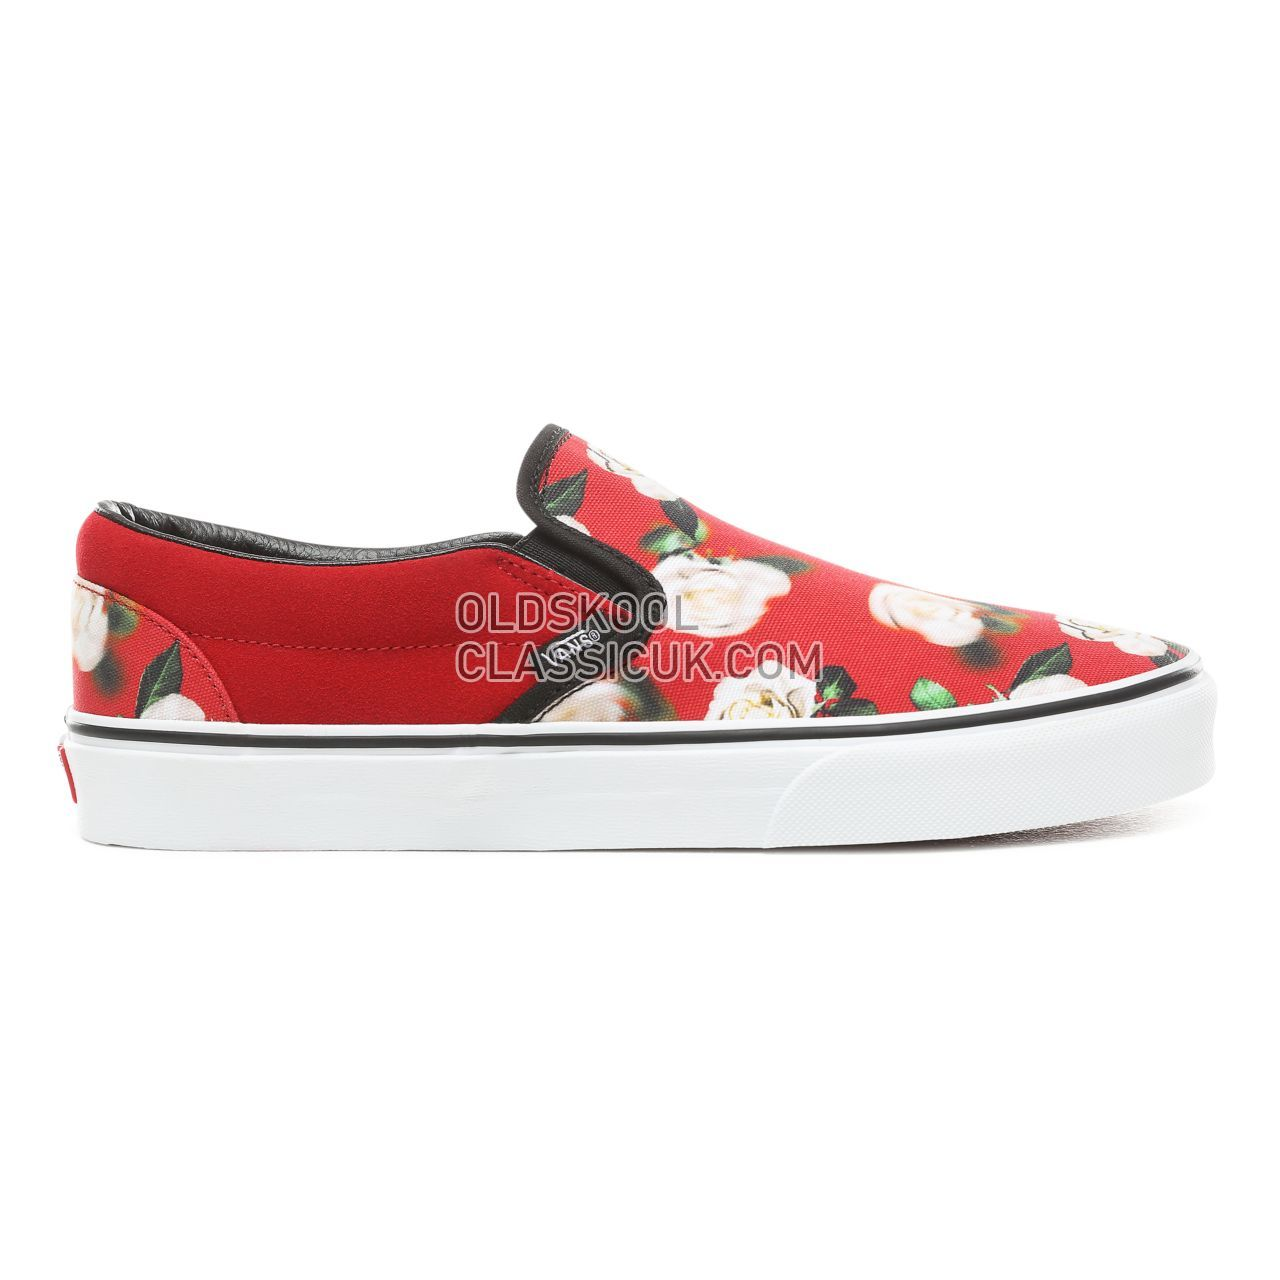 Vans Romantic Floral Slip-On Sneakers Mens (Romantic Floral) Chili Pepper/True White VN0A38F7VMI Shoes